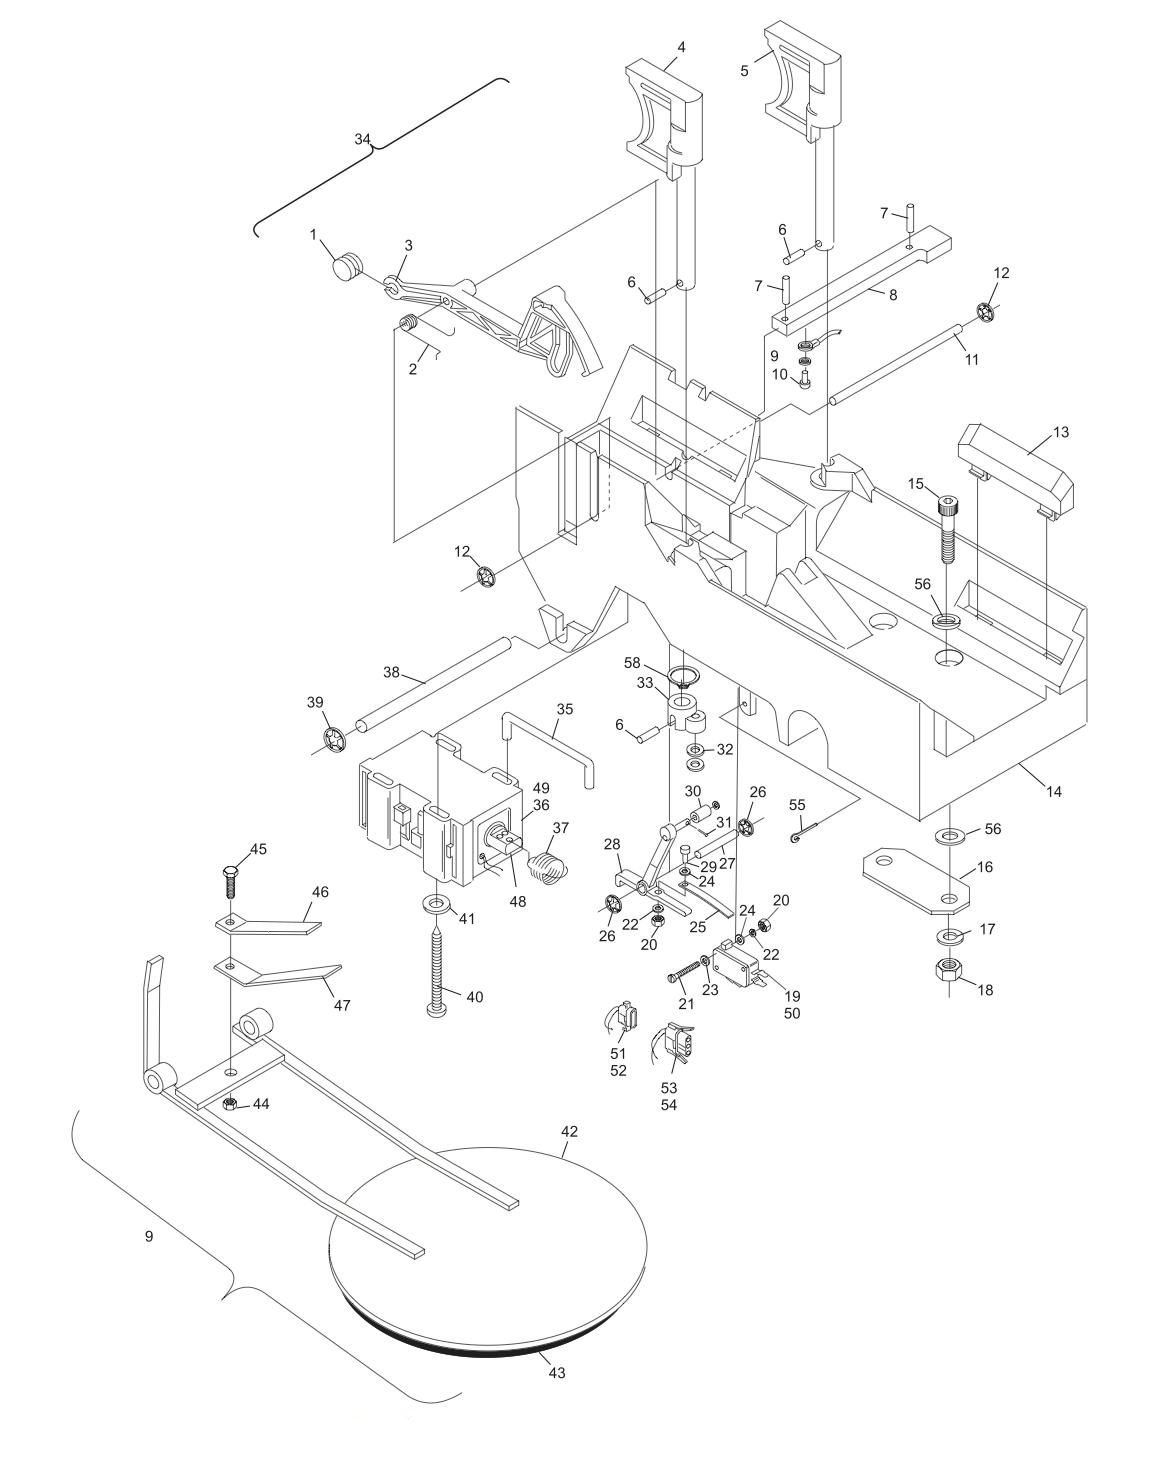 GS-10 and GS-92 Pin Holder Assembly